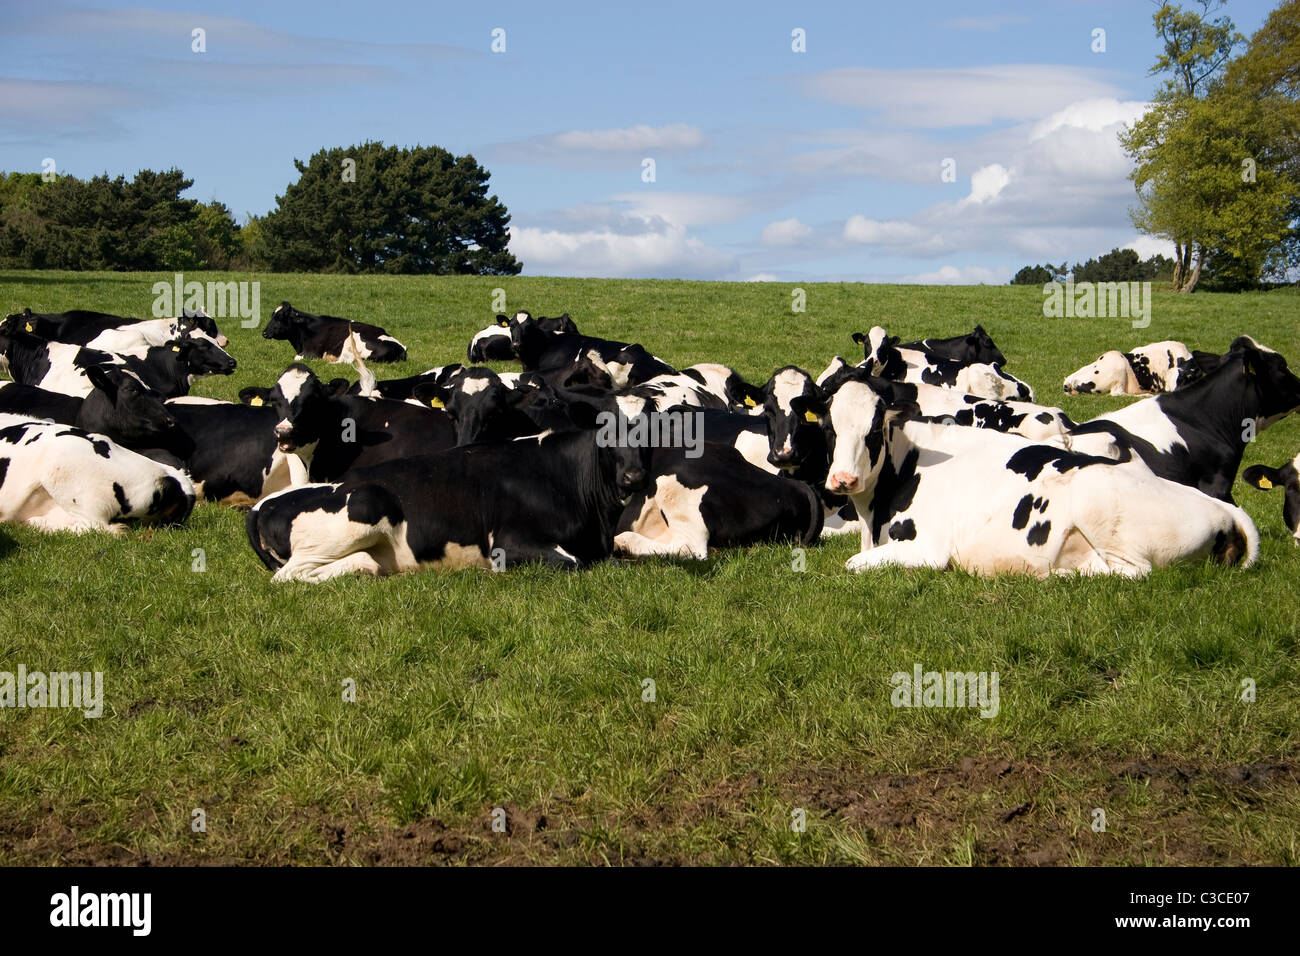 cows sitting stock photos u0026 cows sitting stock images alamy